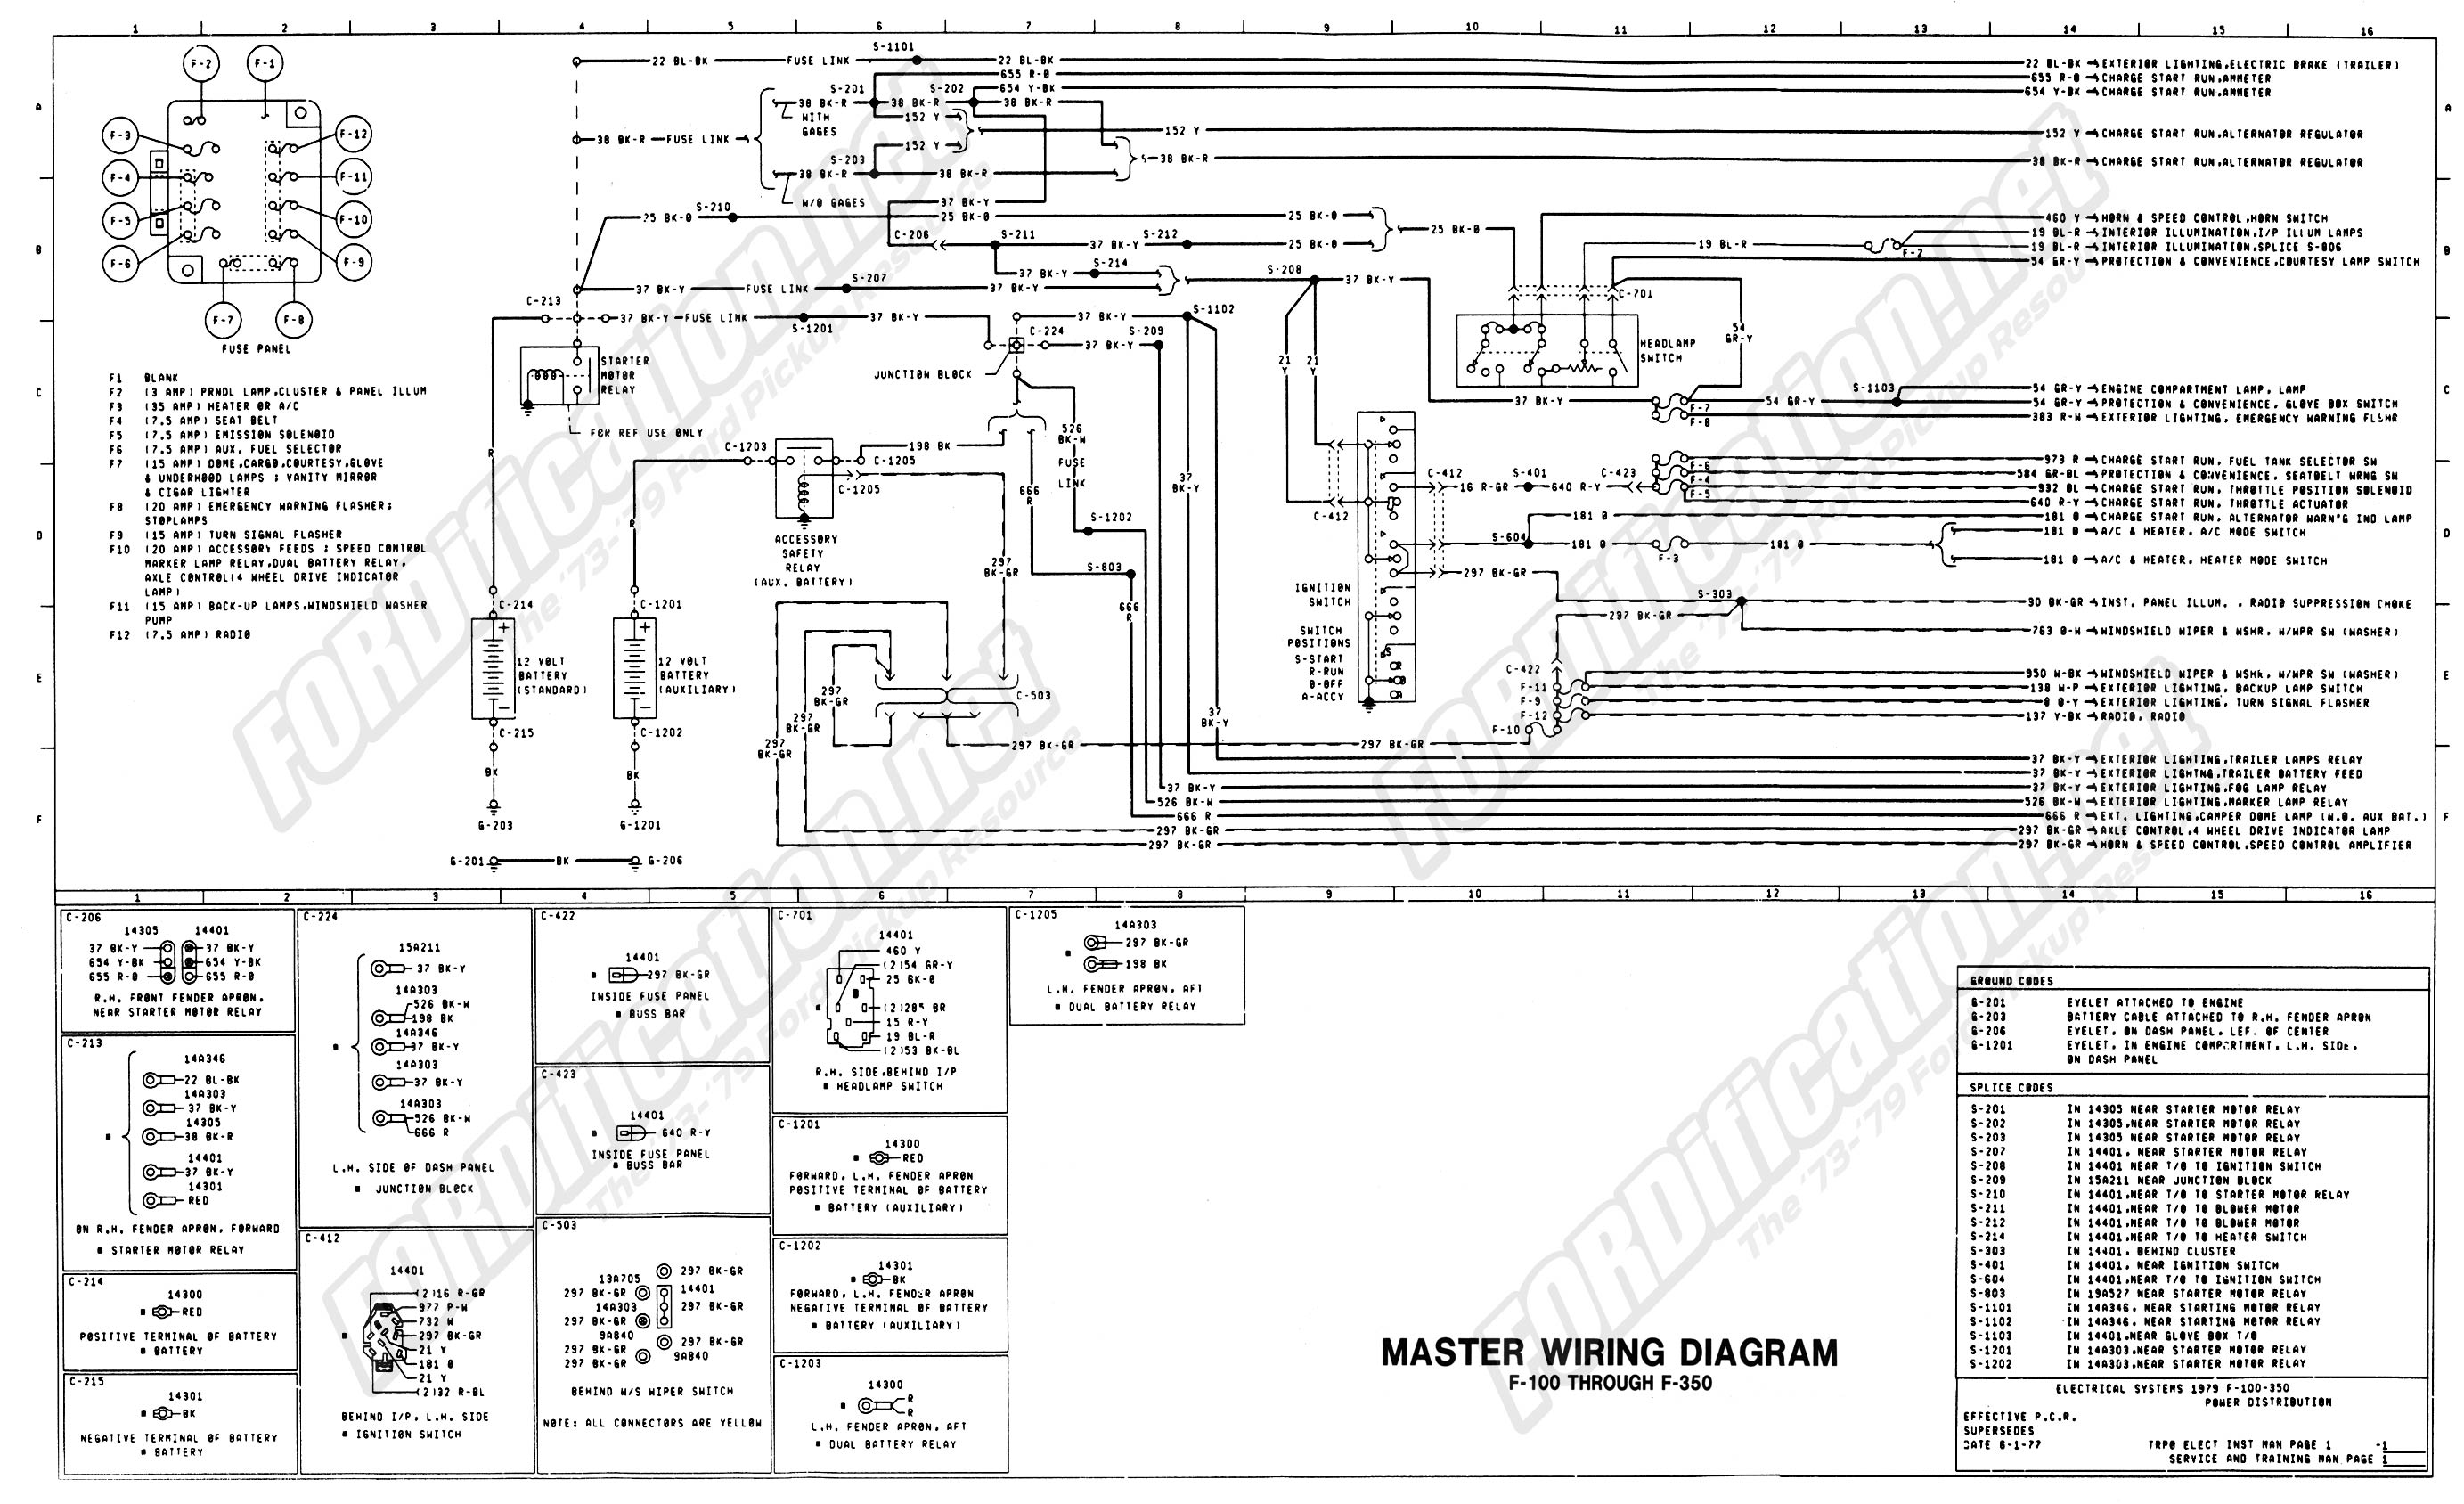 wiring_79master_1of9 1973 1979 ford truck wiring diagrams & schematics fordification net 1970 ford f100 turn signal wiring diagram at mifinder.co